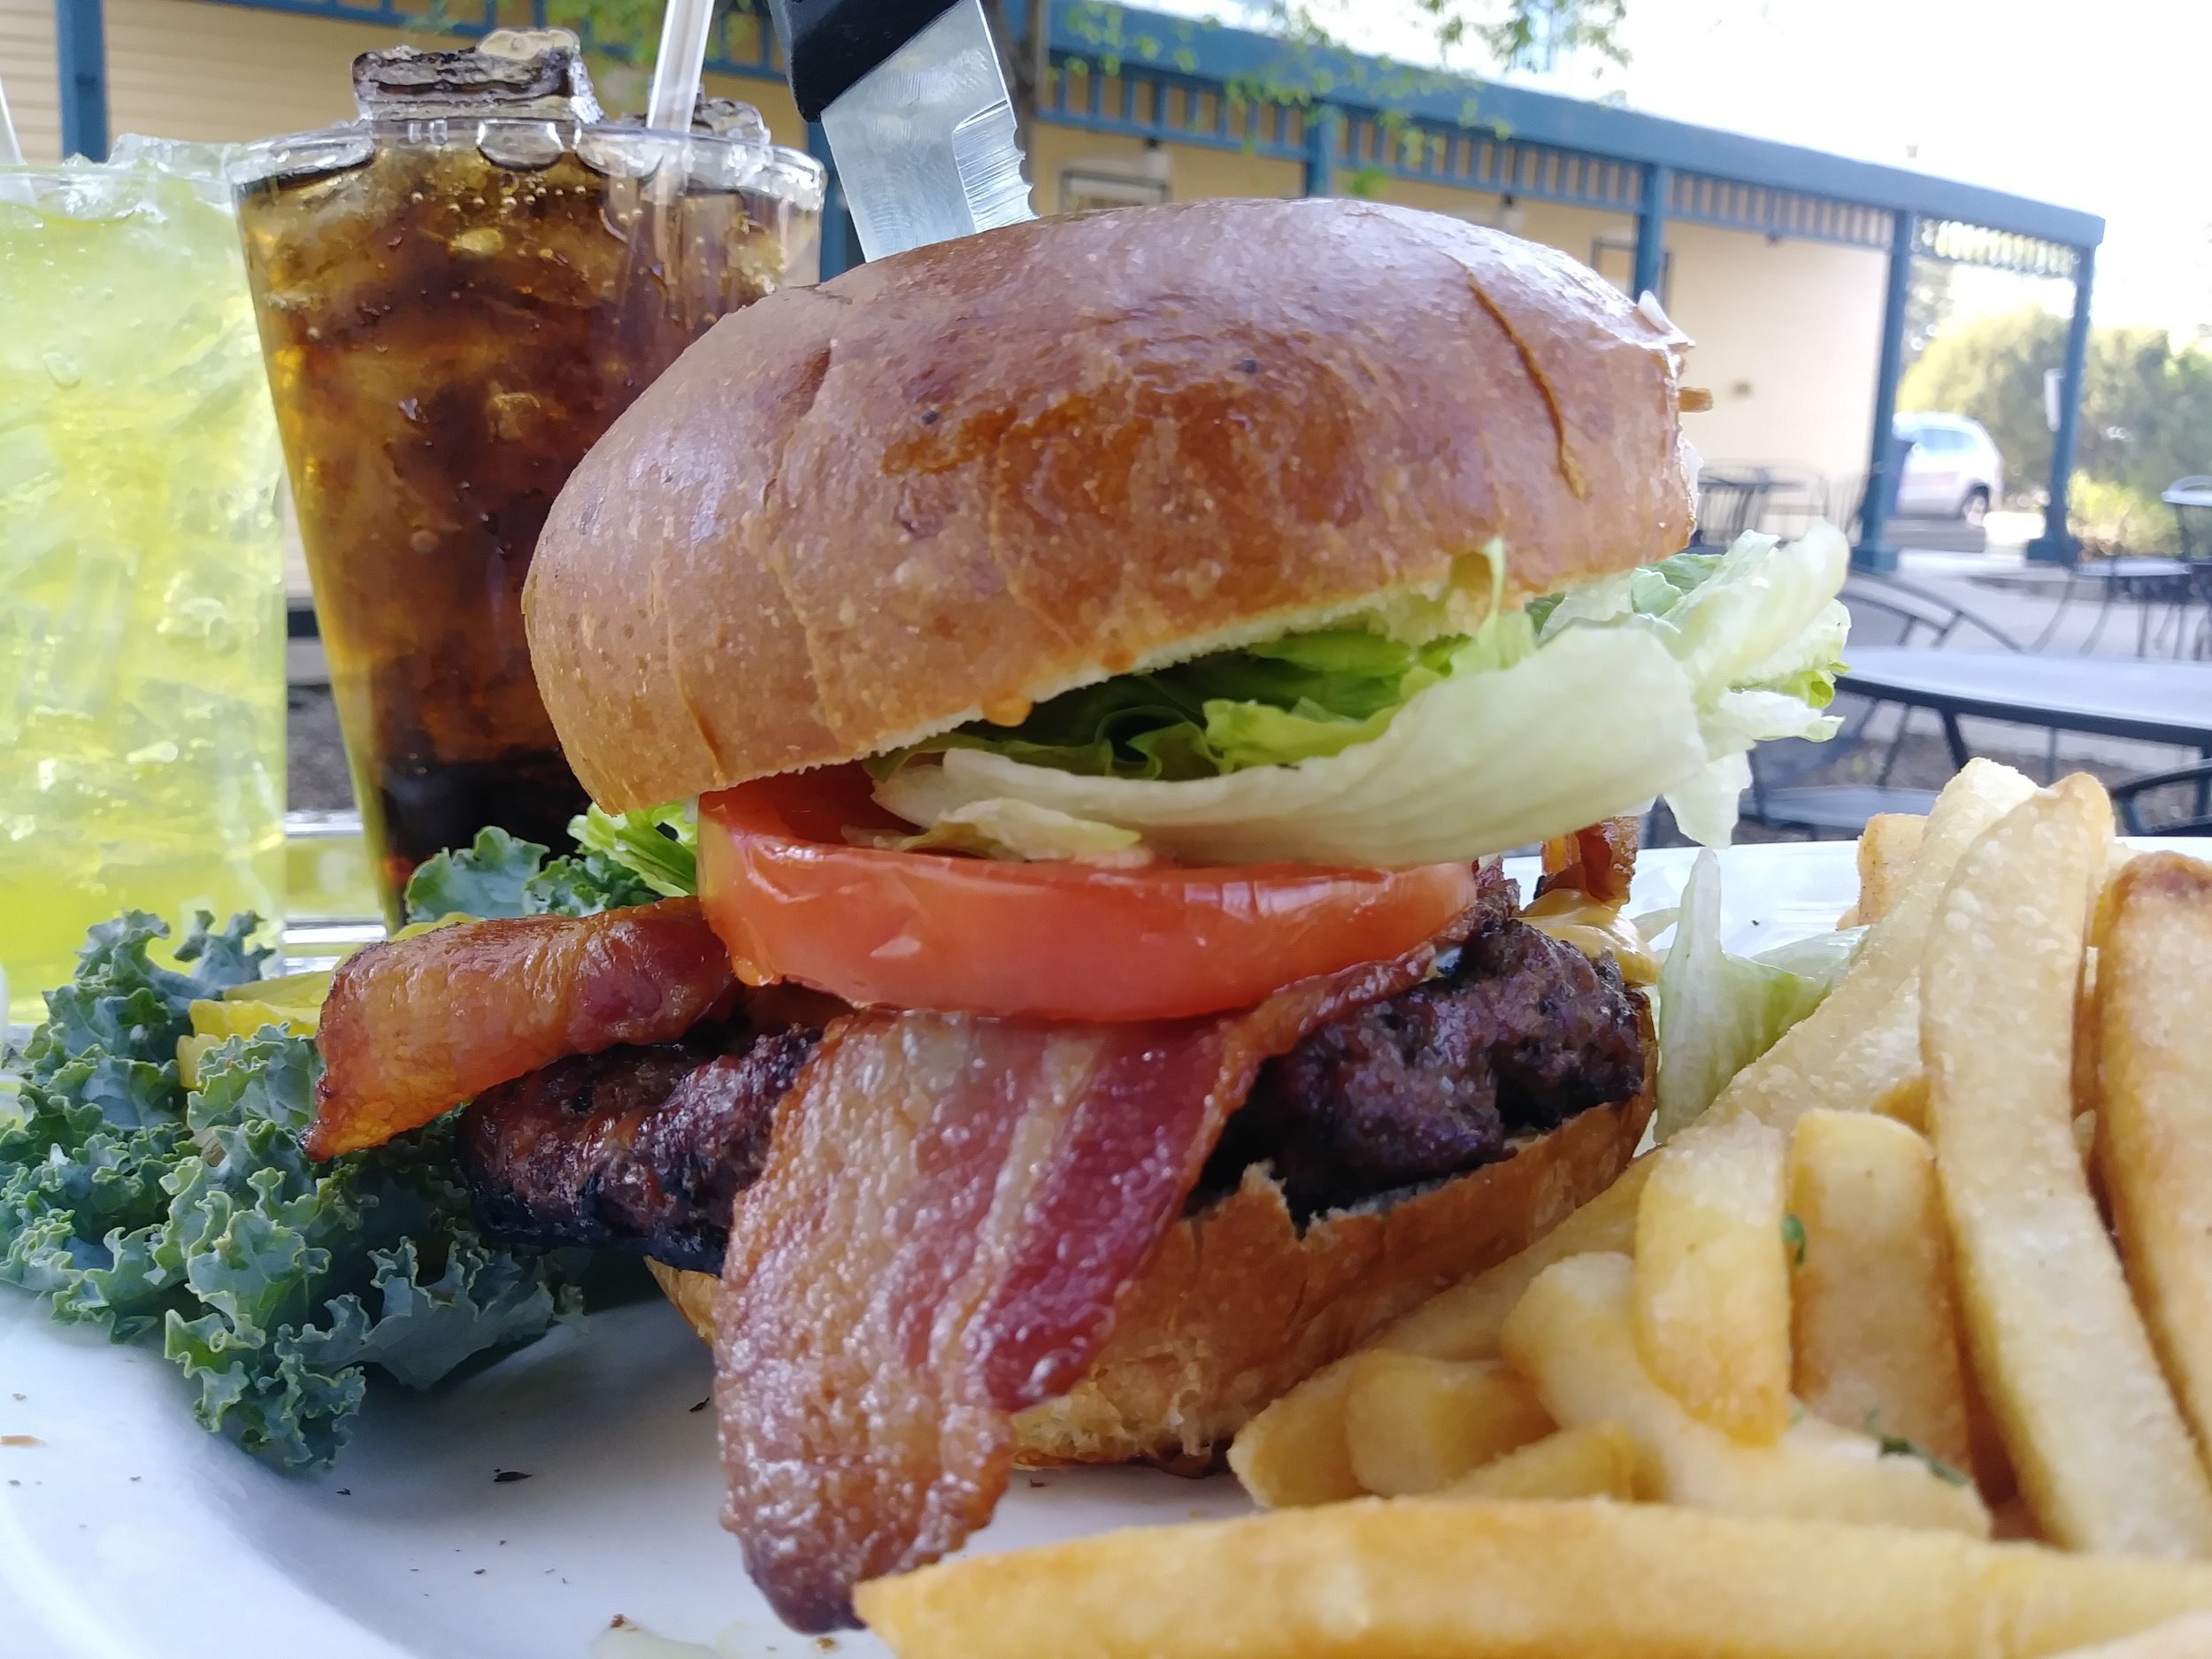 Thayer burger deluxe - A bacon cheese burger topped with mayo, lettuce, tomato, & raw onions $11.99